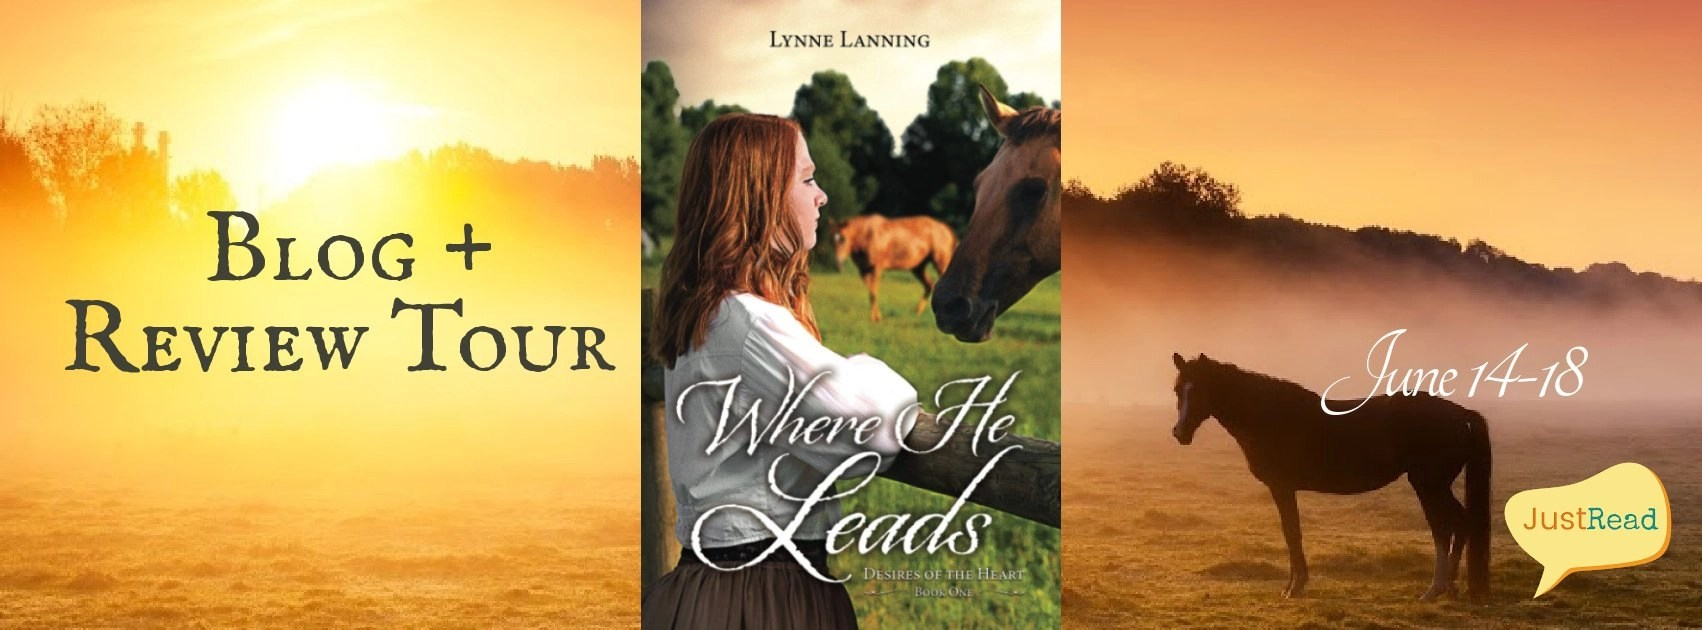 Welcome to the Where He Leads Blog + Review Tour & Giveaway!